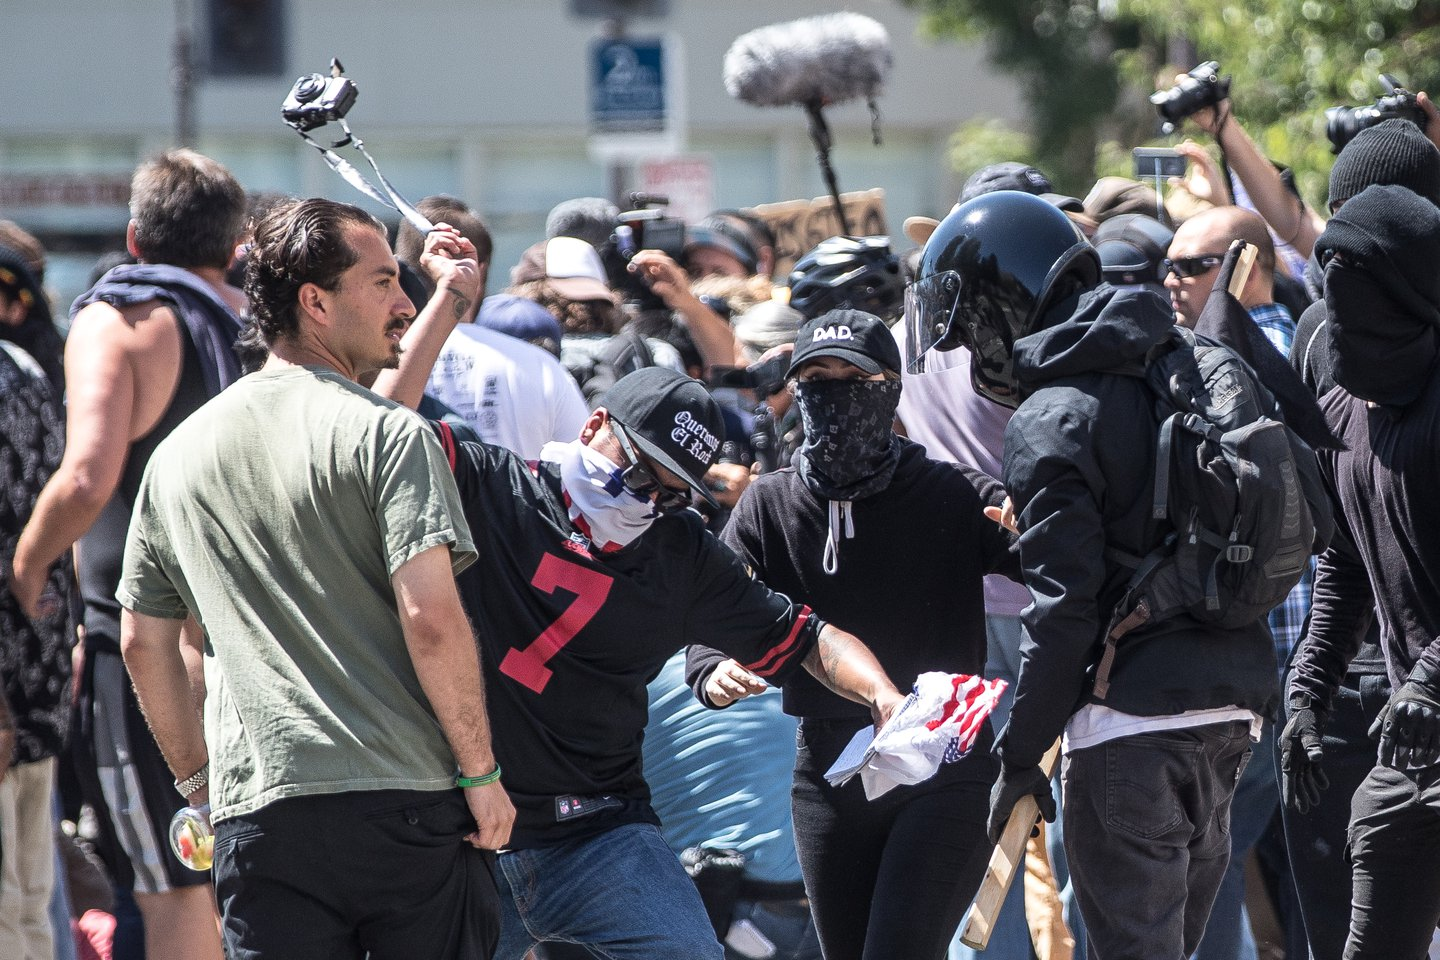 Protester about to smash Mike Kessler's camera at Berkeley